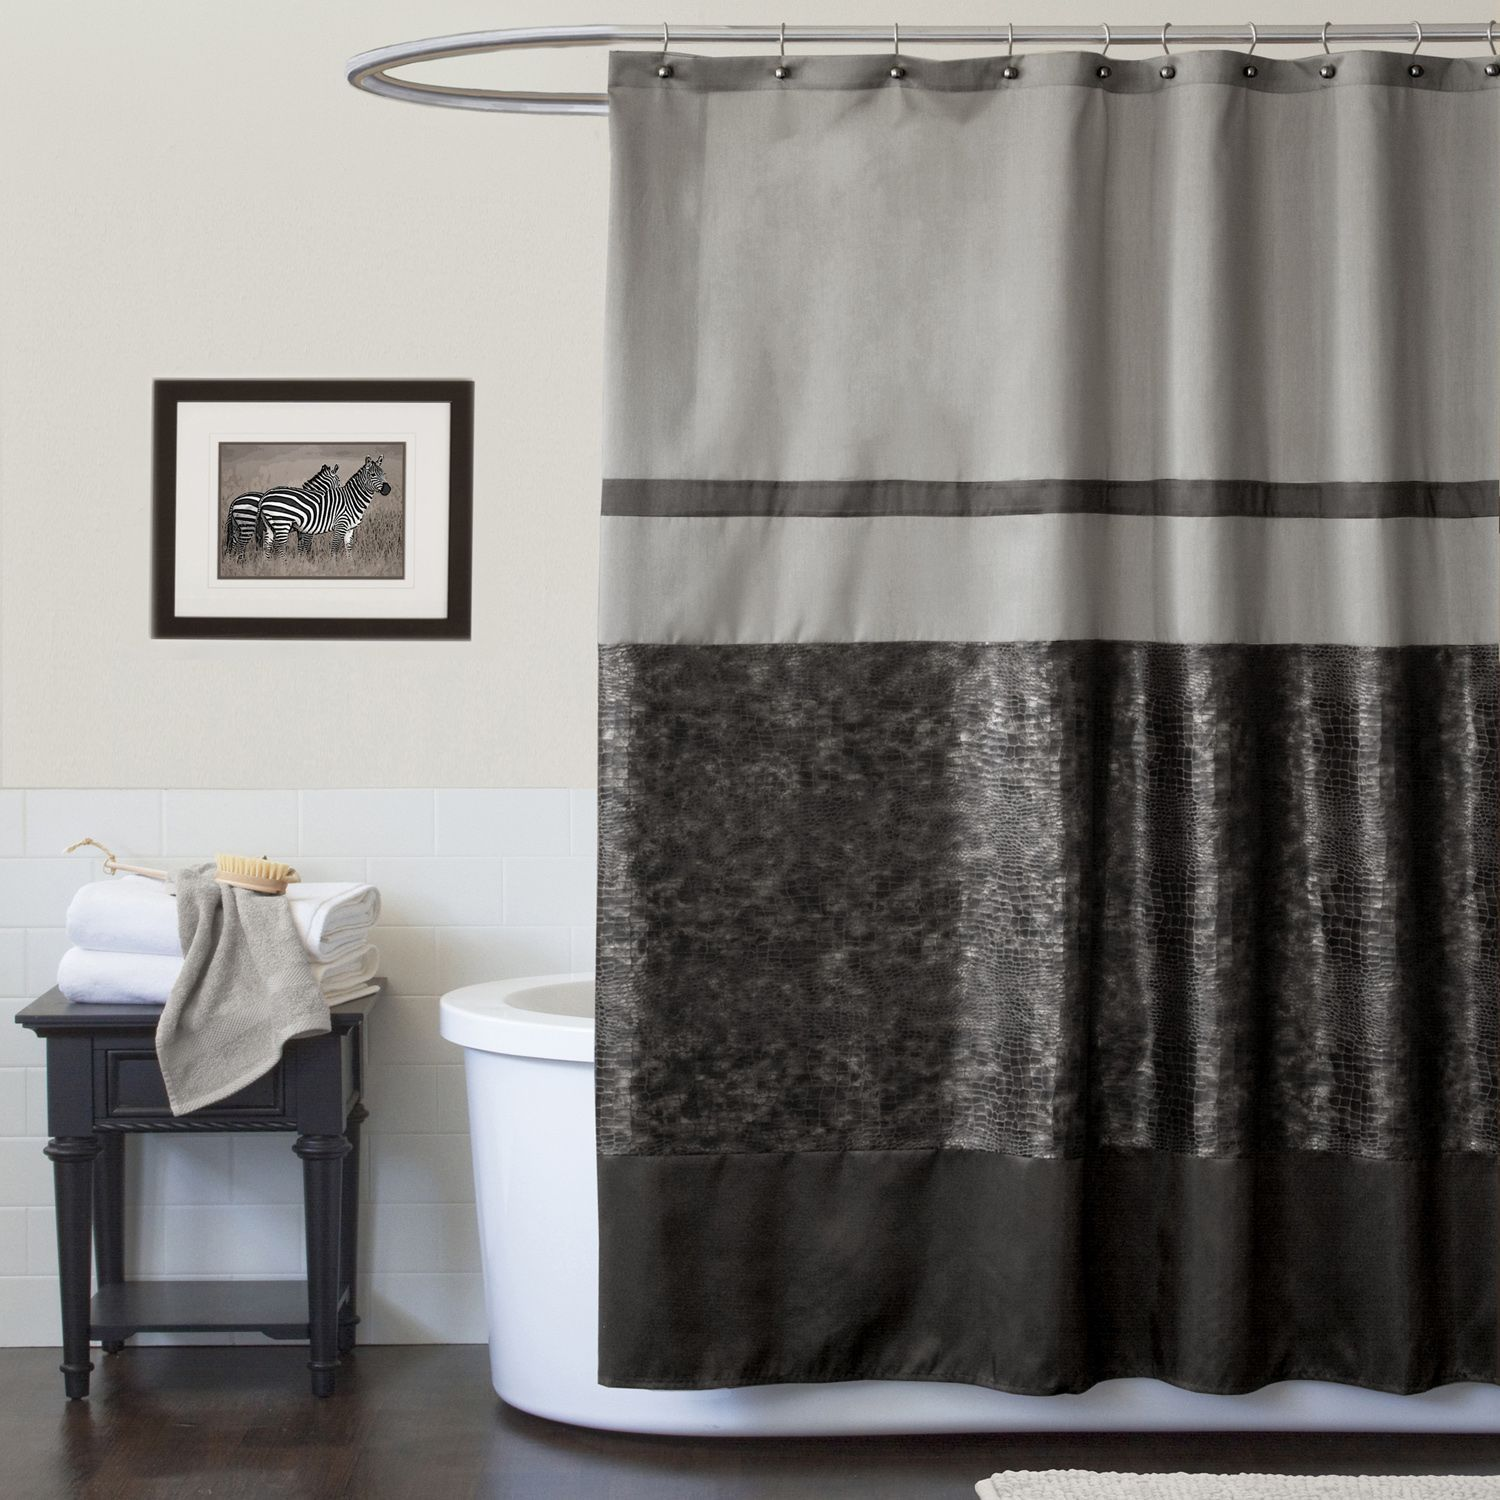 Lush Decor Croc Black Shower Curtain  Bed Bath Curtains Accessories